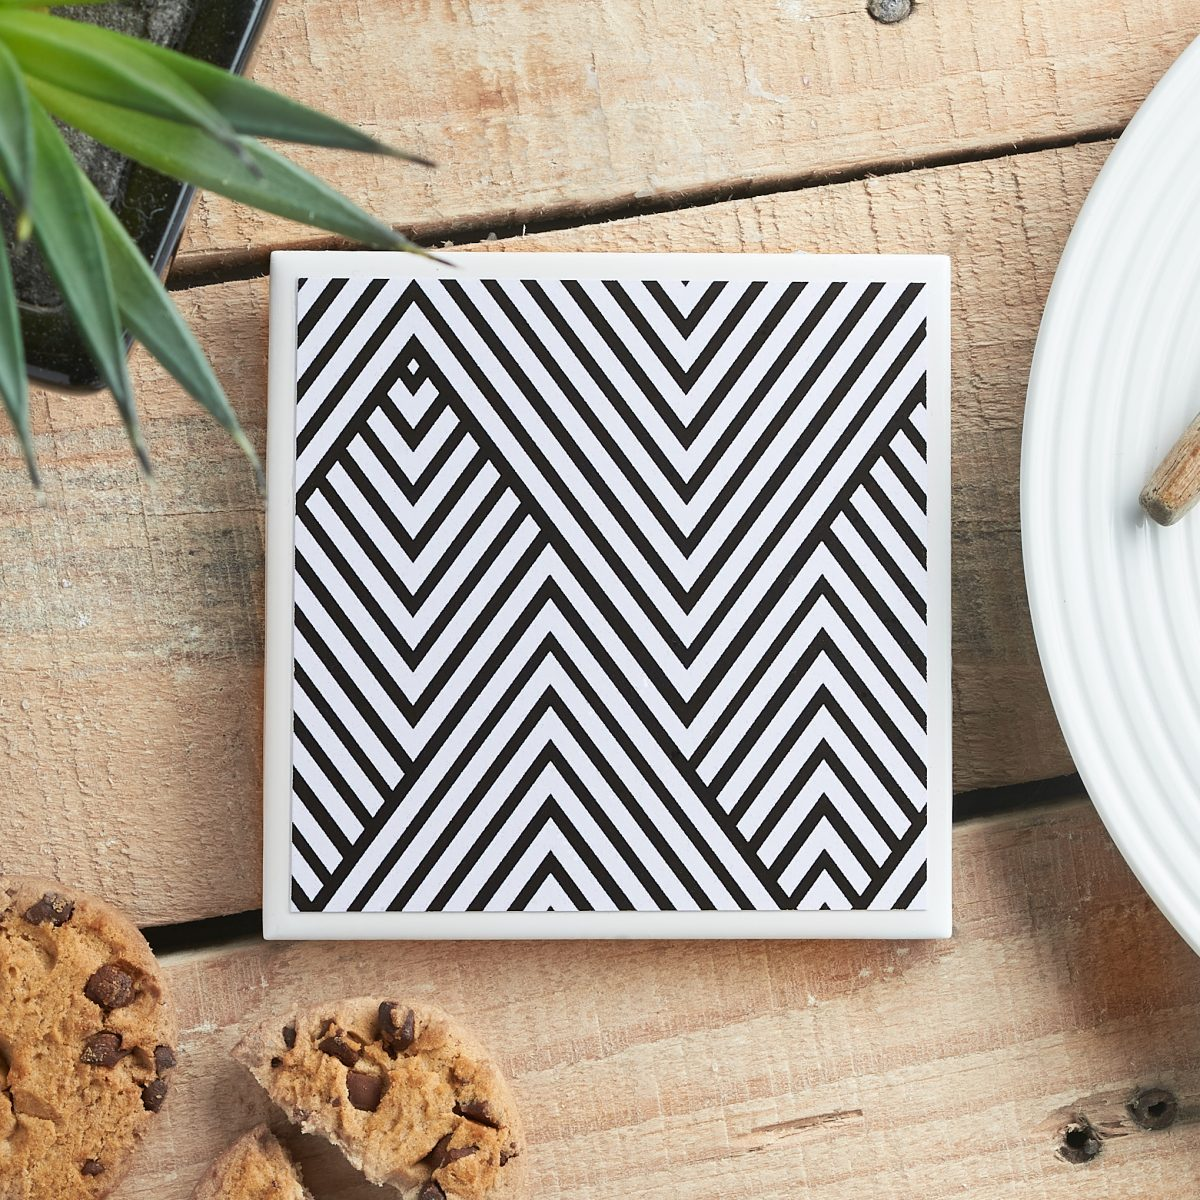 Monochrome Chevron Ceramic Coaster by Yellow Room